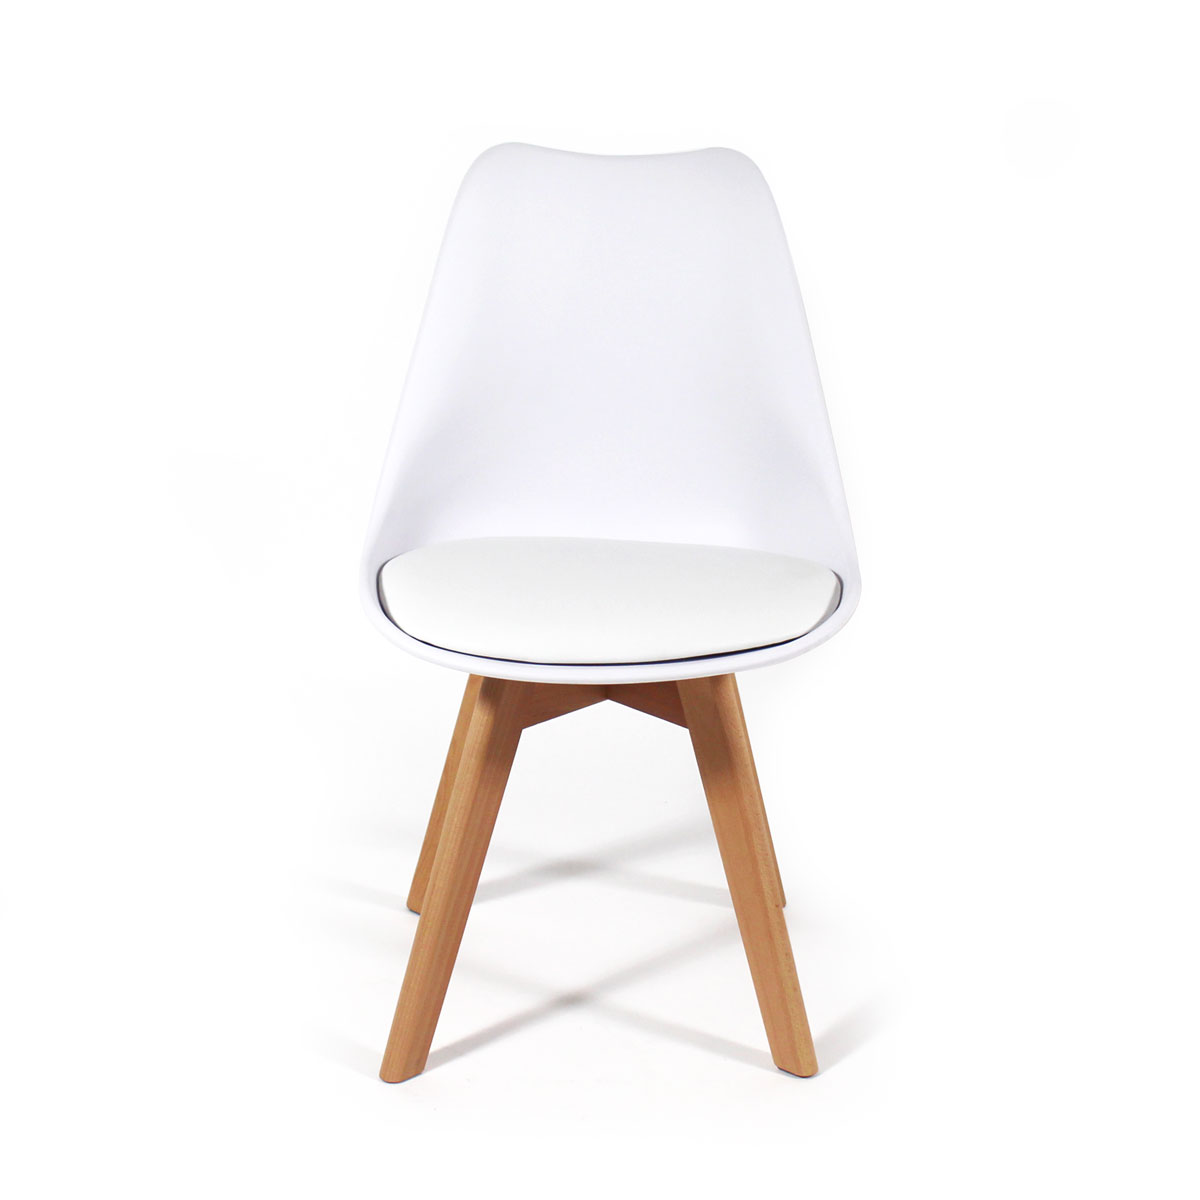 Chaise scandinave pieds hêtre blanche